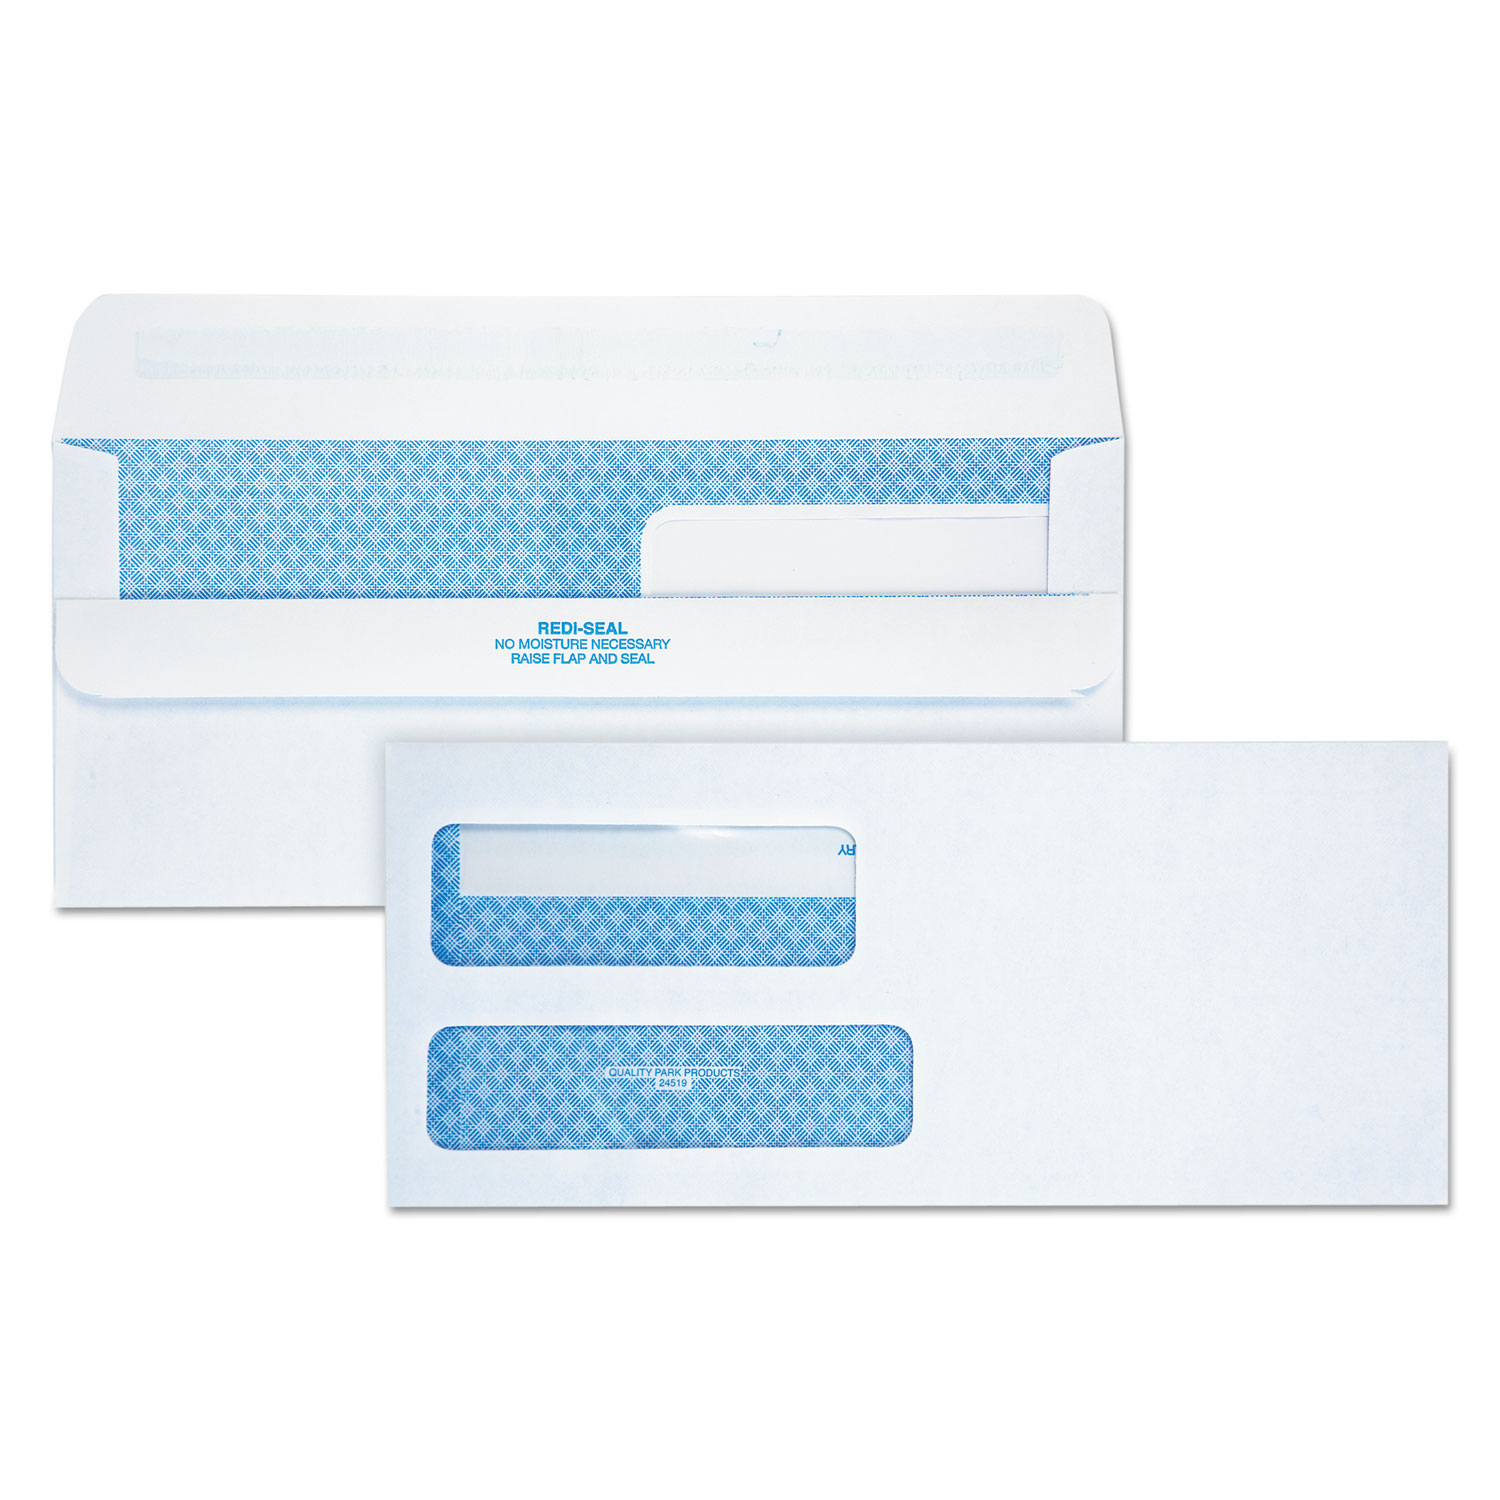 Double Window Redi-Seal Security-Tinted Envelope, #9, Commercial Flap, Redi-Seal Closure, 3.88 x 8.88, White, 250/Carton